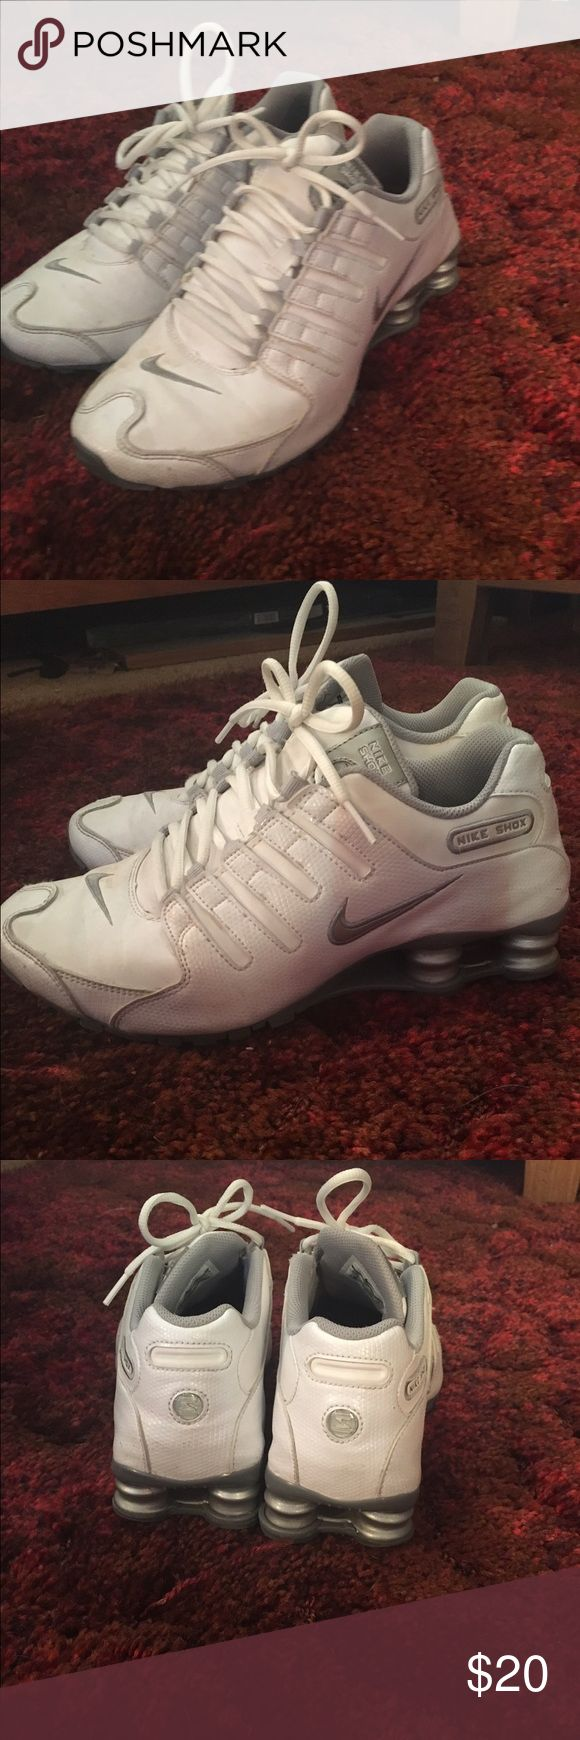 White nike shocks Great used condition still have a lot of life left in them. Nike Shoes Athletic Shoes